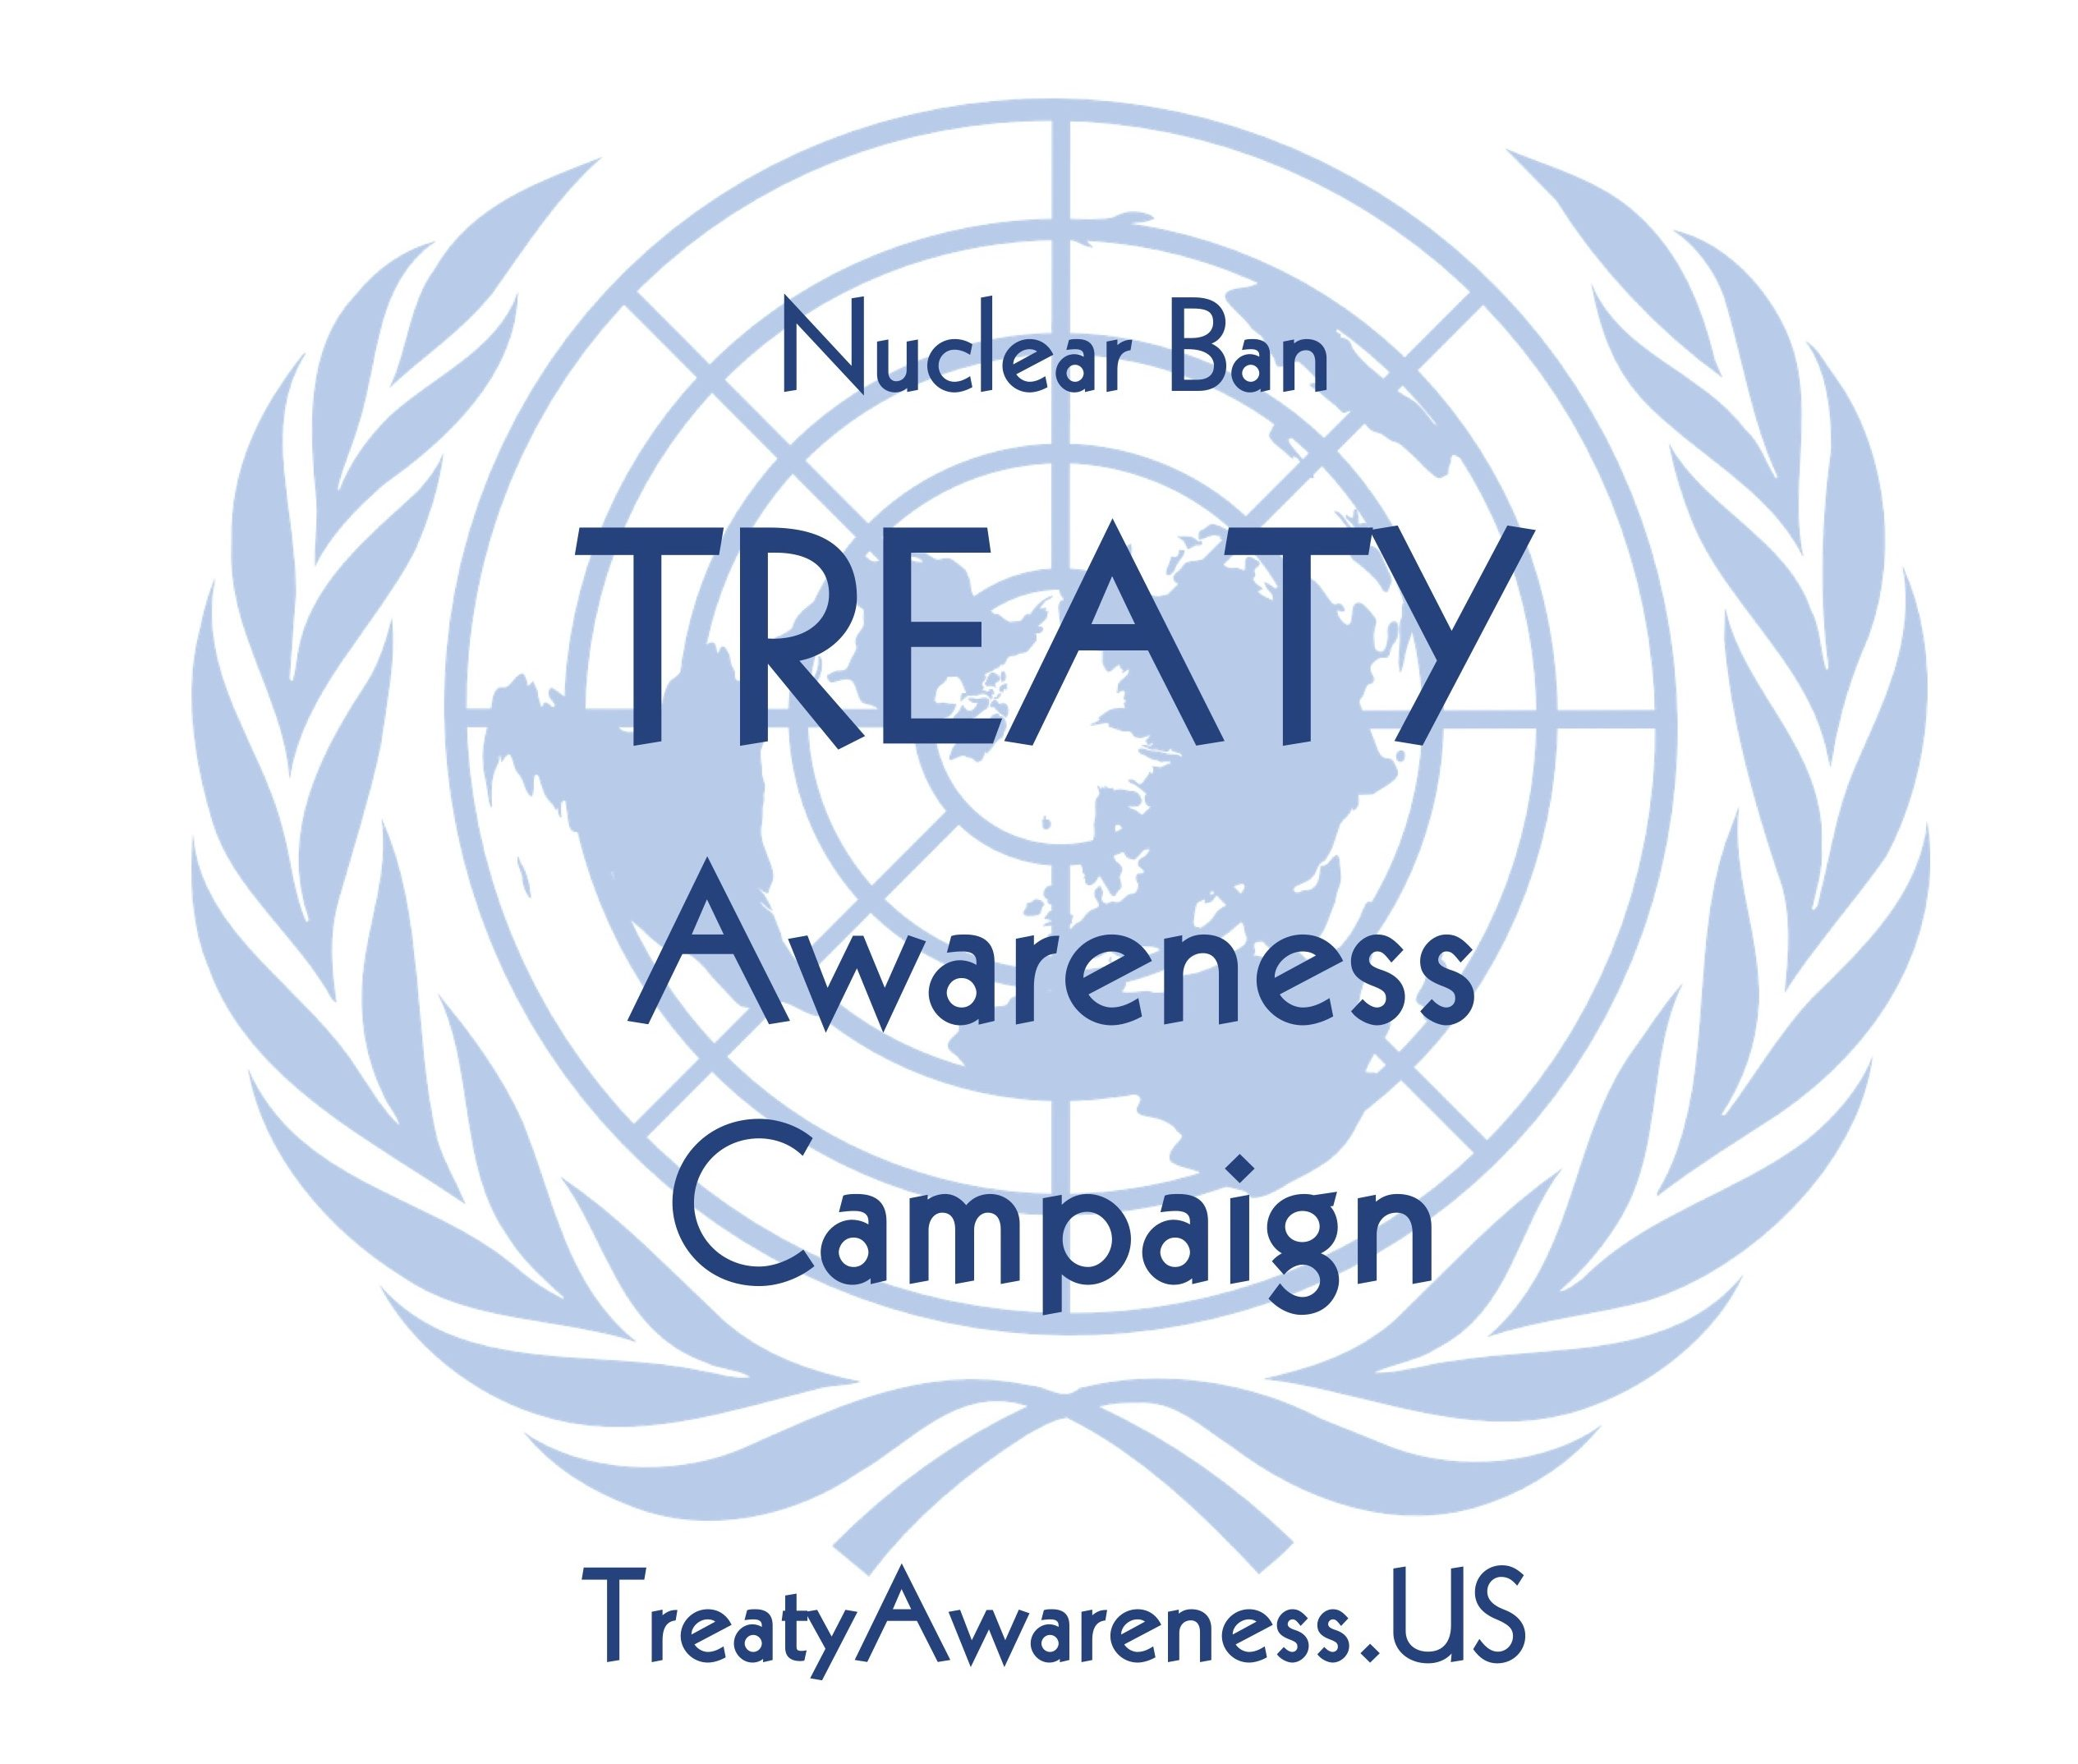 Treaty Awareness Campaign